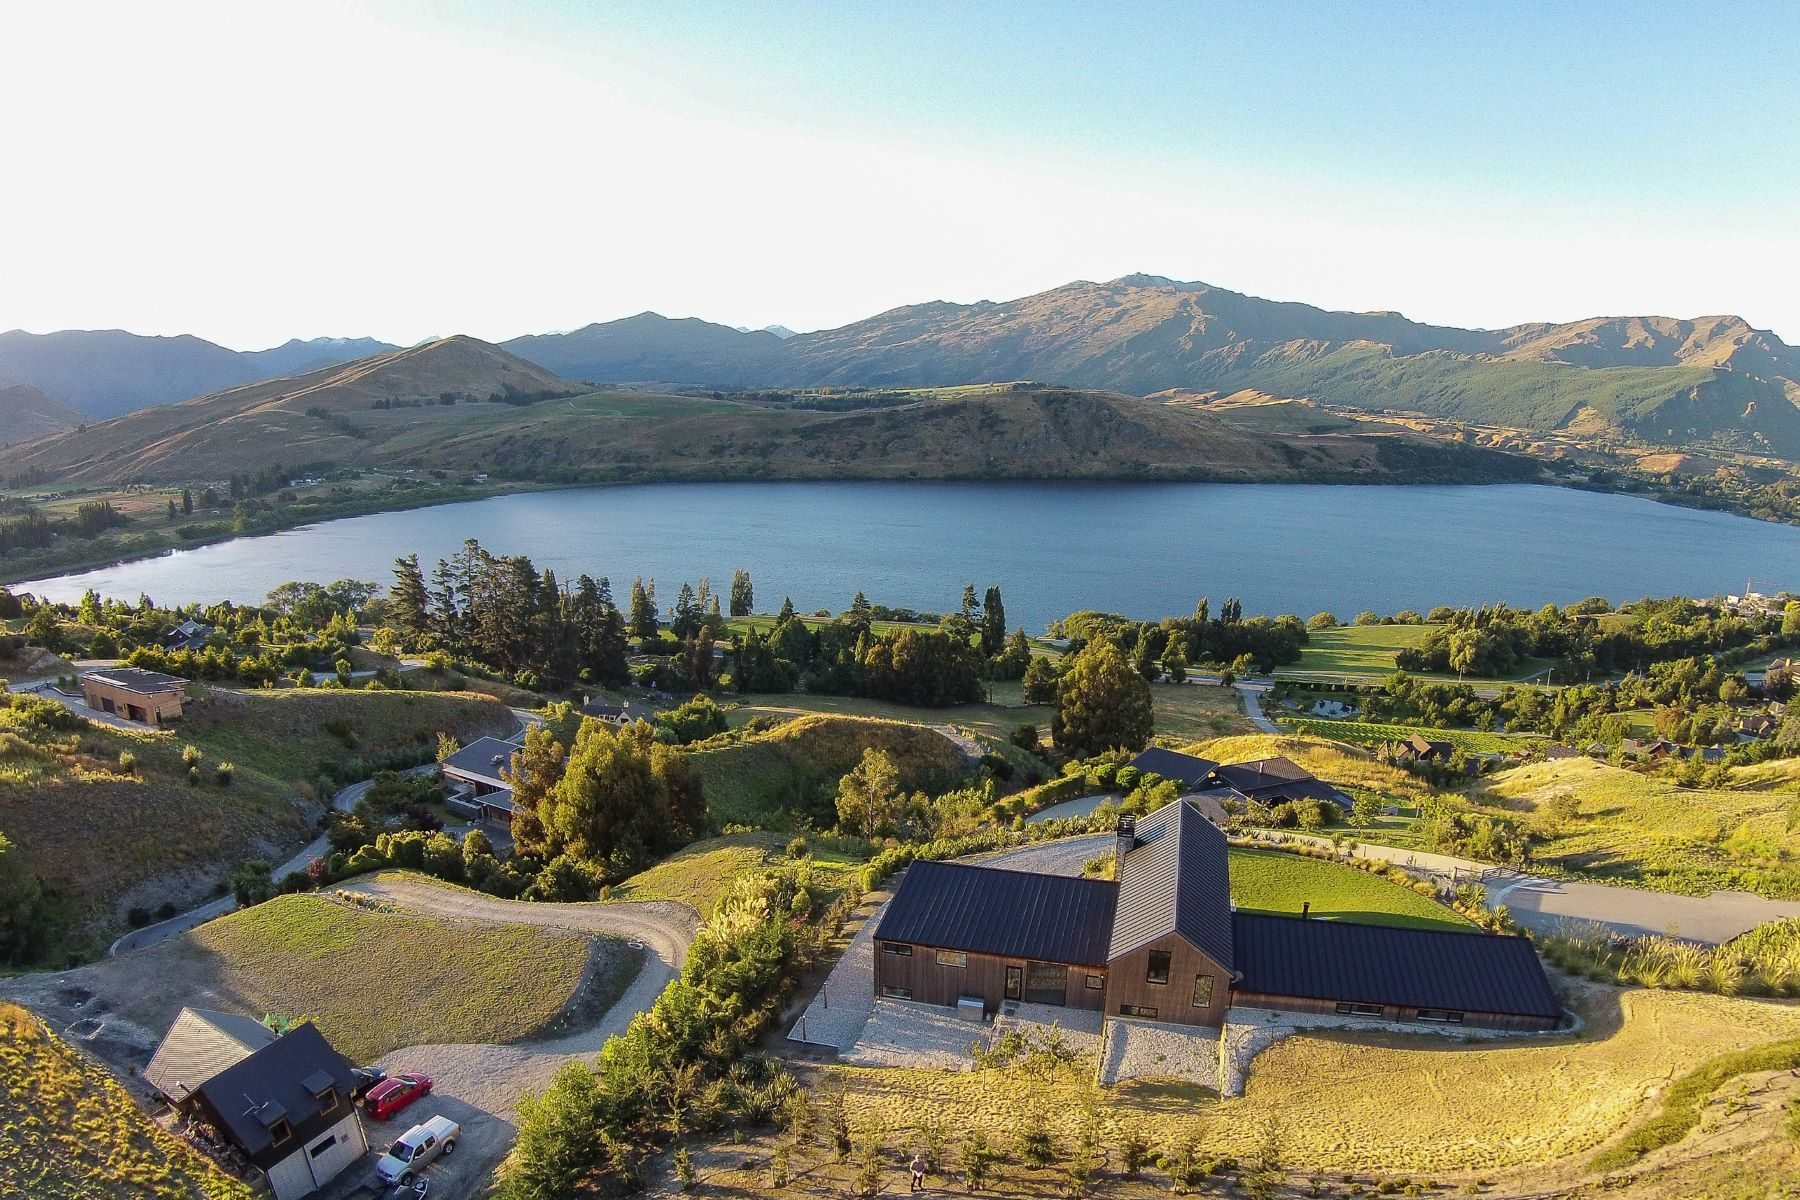 Single Family Home for Rent at Sicilia 66 Sicilian Lane, Lake Hayes, Queenstown, Otago, 9371 New Zealand